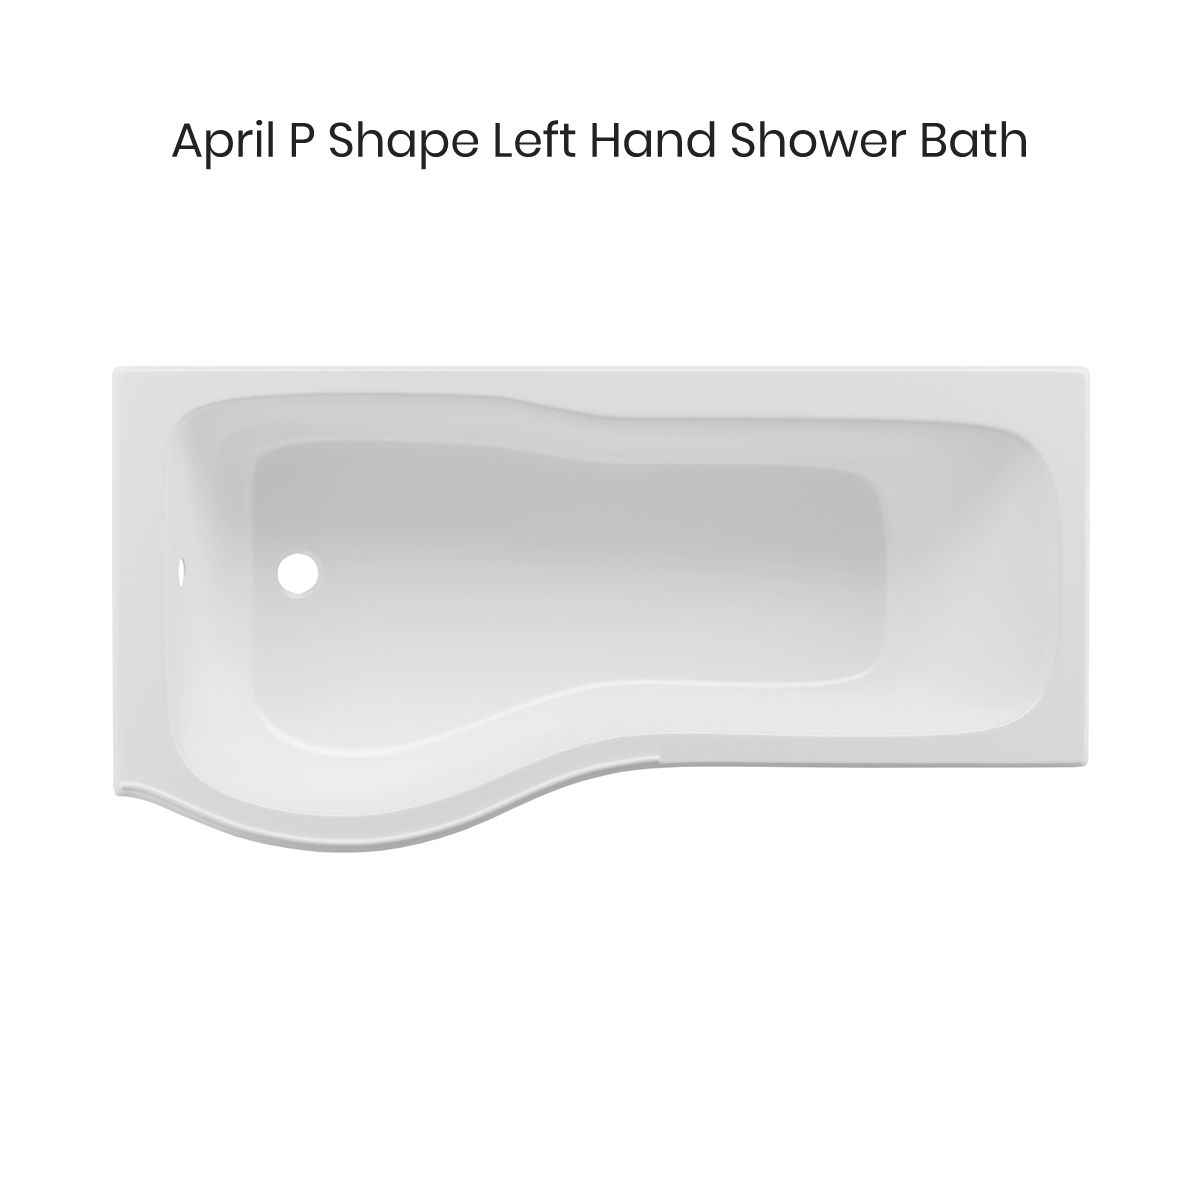 April P Shape Left Hand Shower Bath